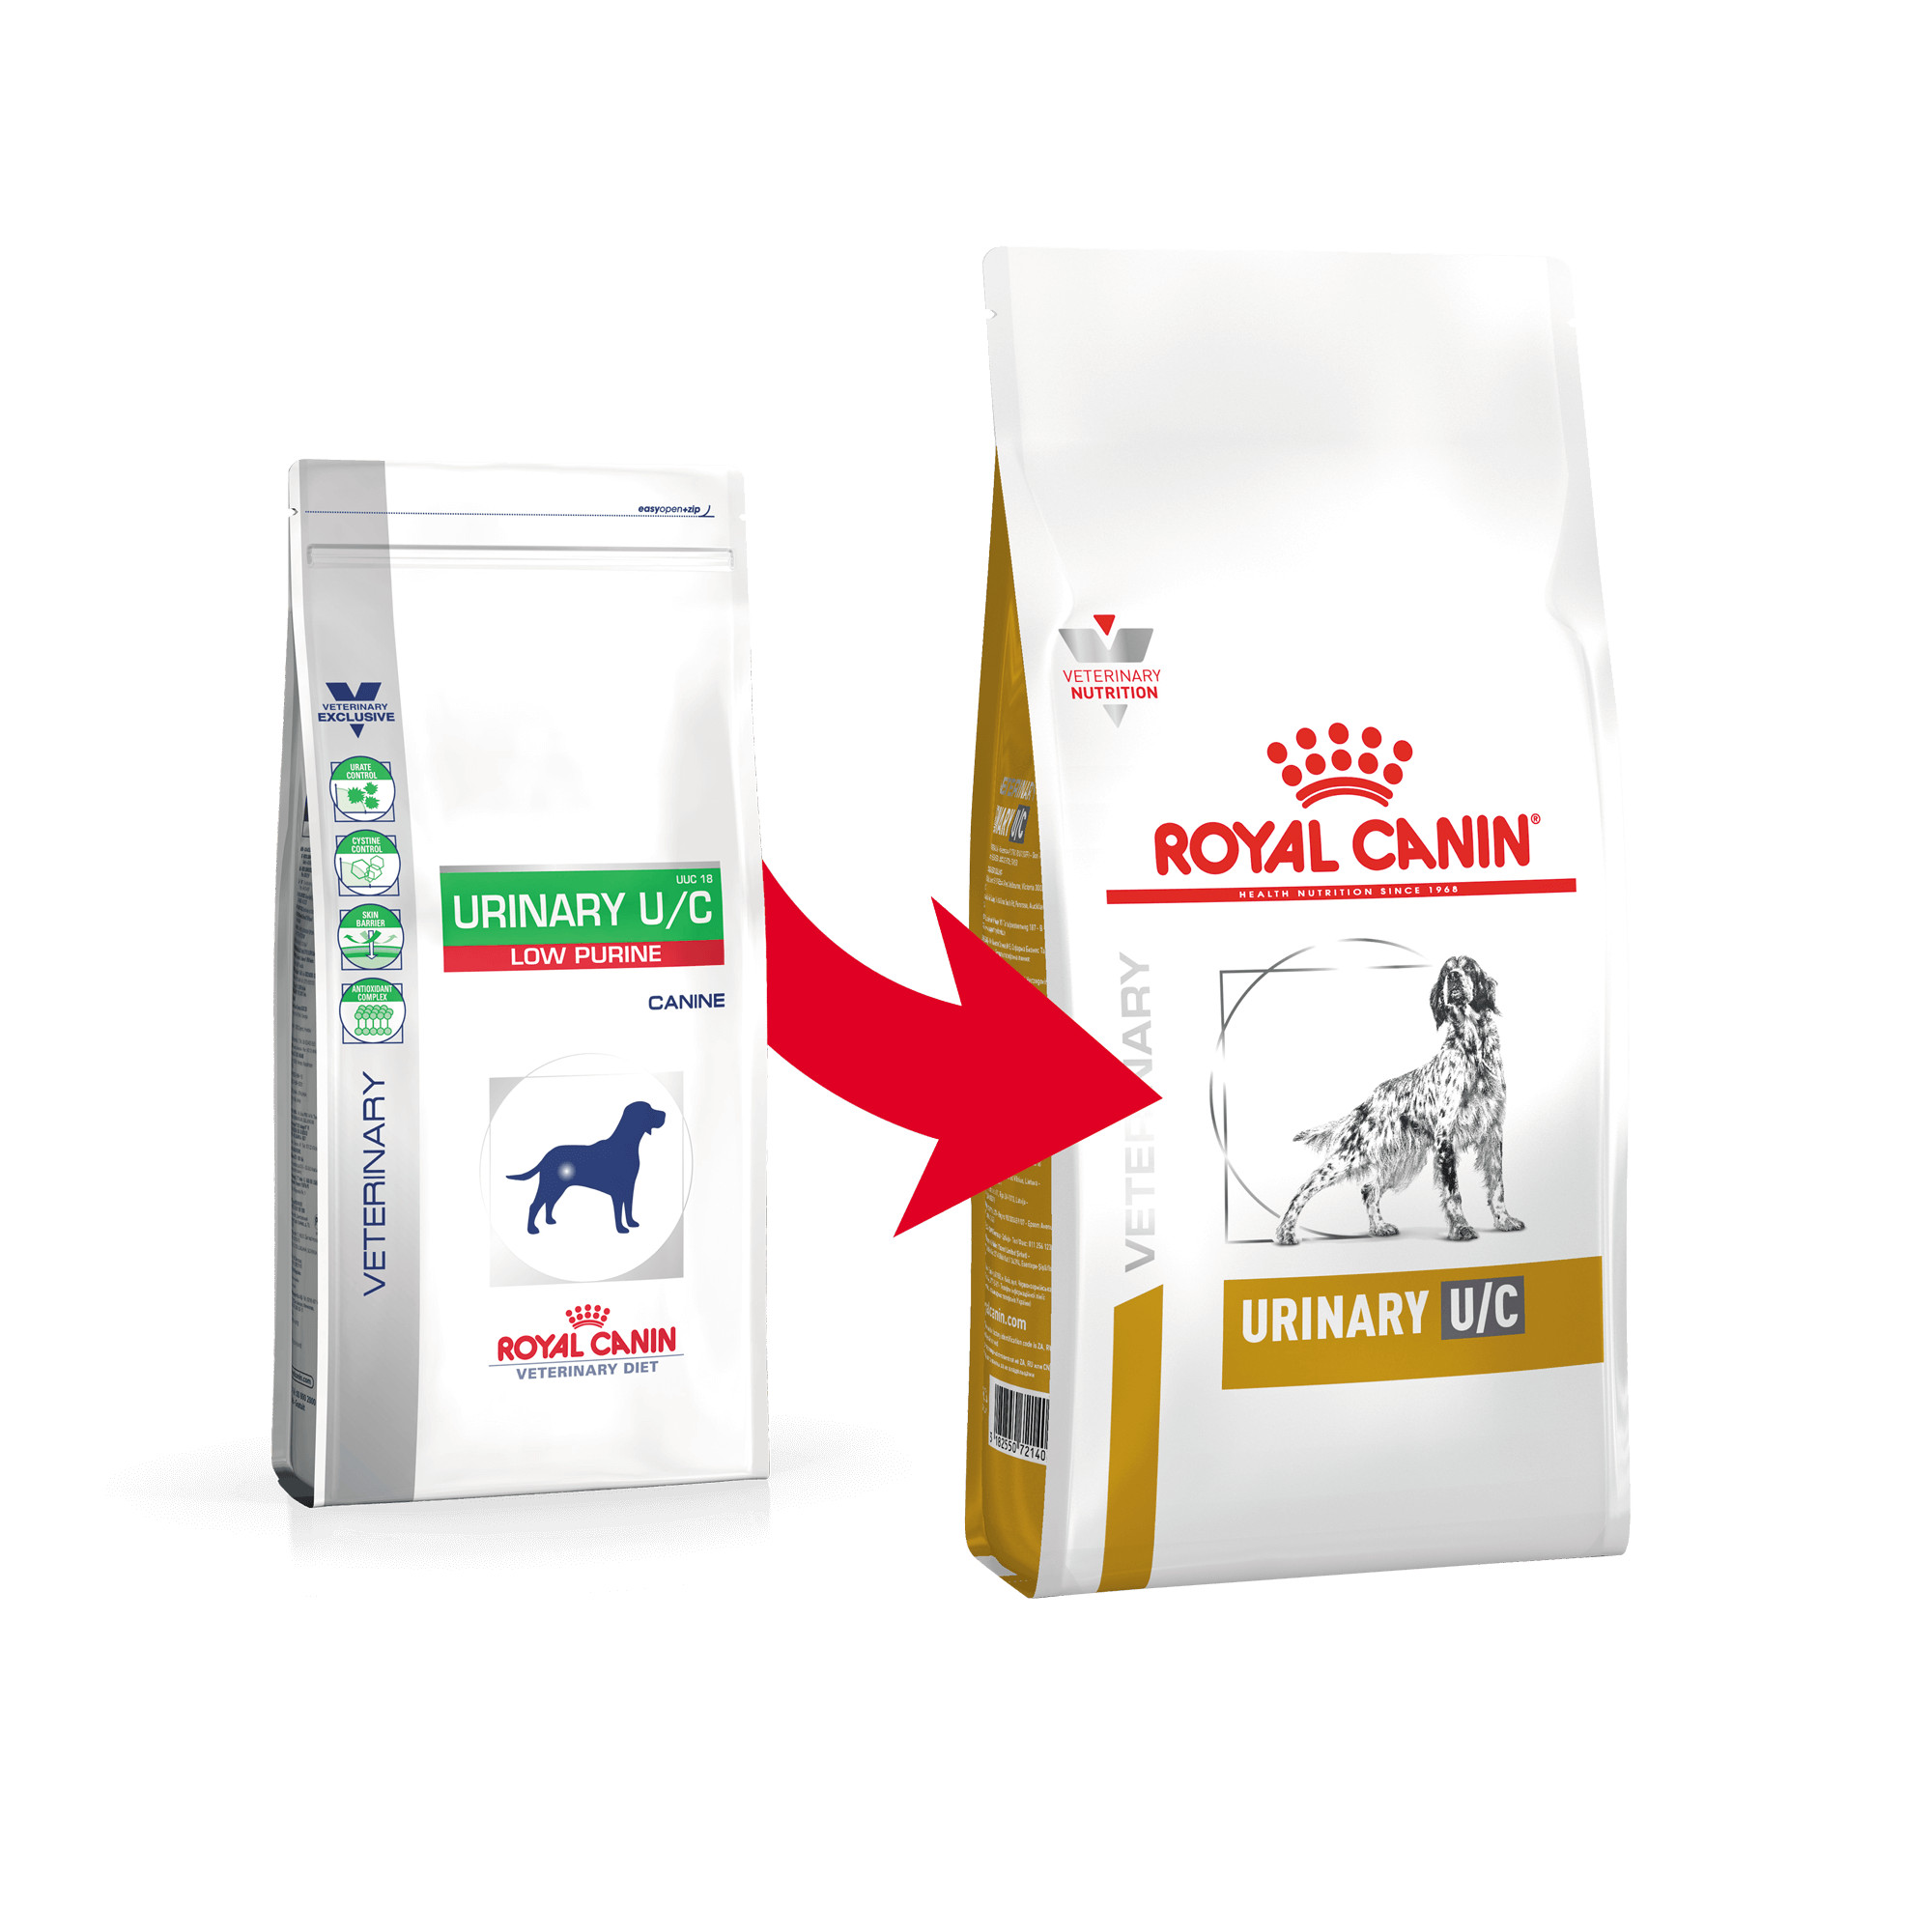 Royal Canin Veterinary Urinary U/C pour chien